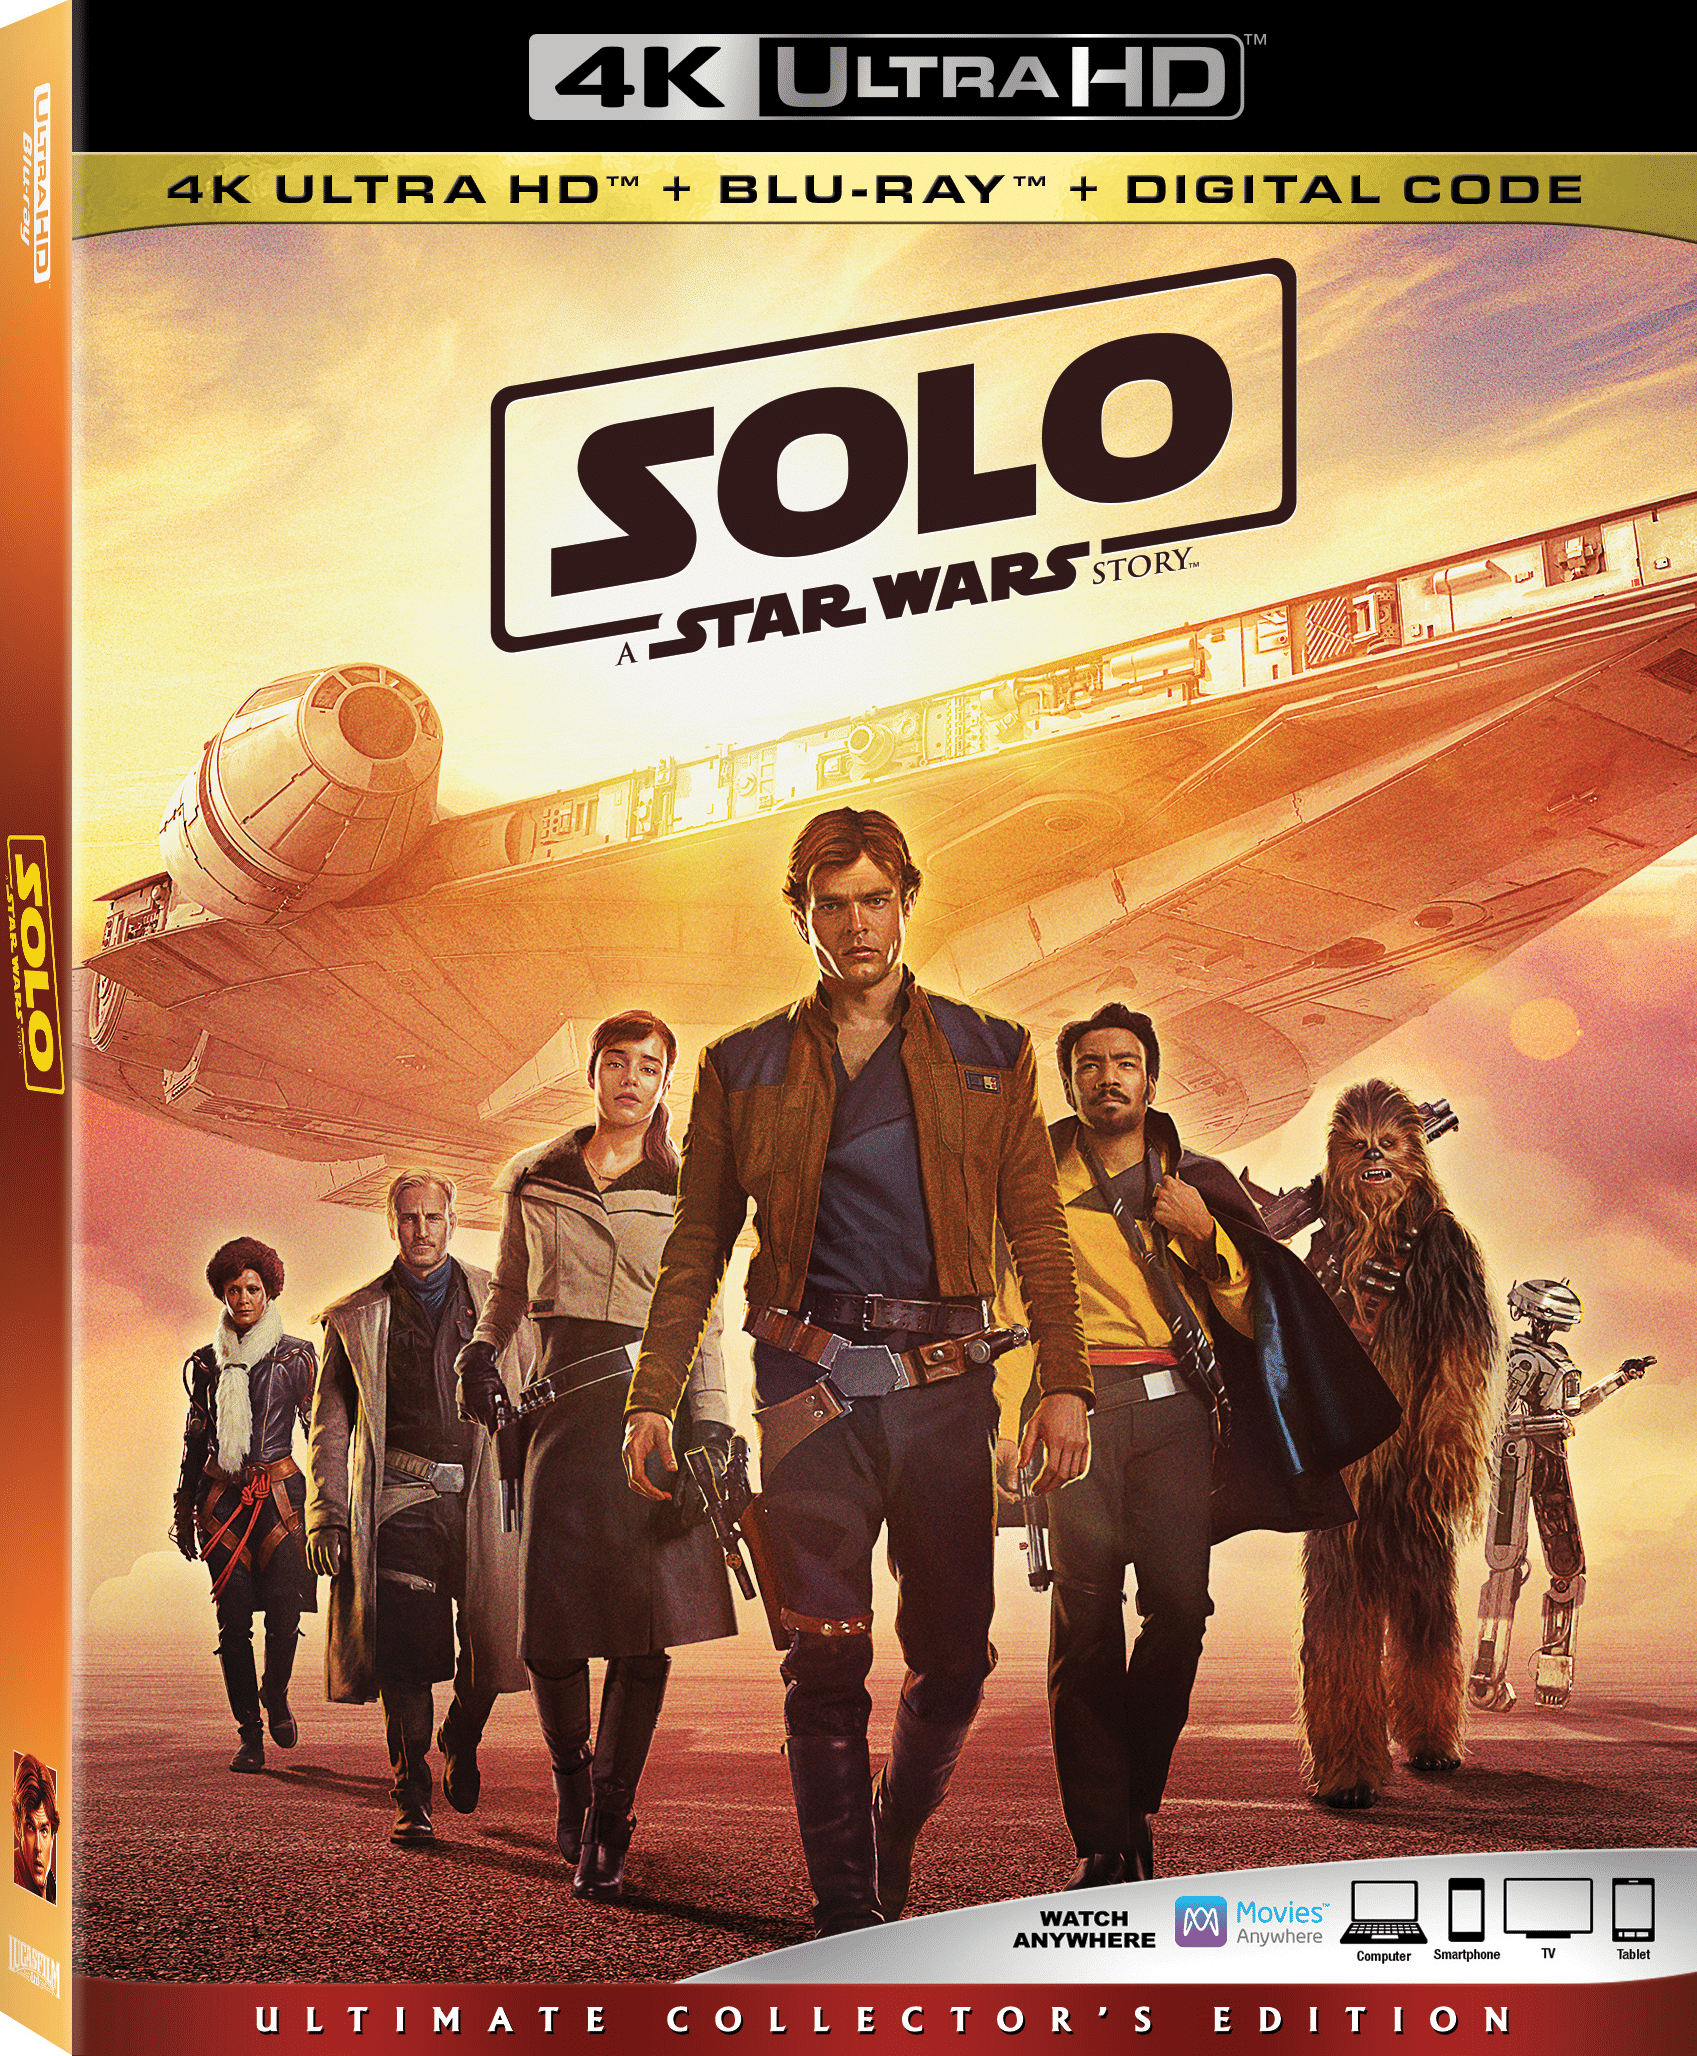 Buckle Up, SOLO a Star Wars Story is Coming Soon on Digital